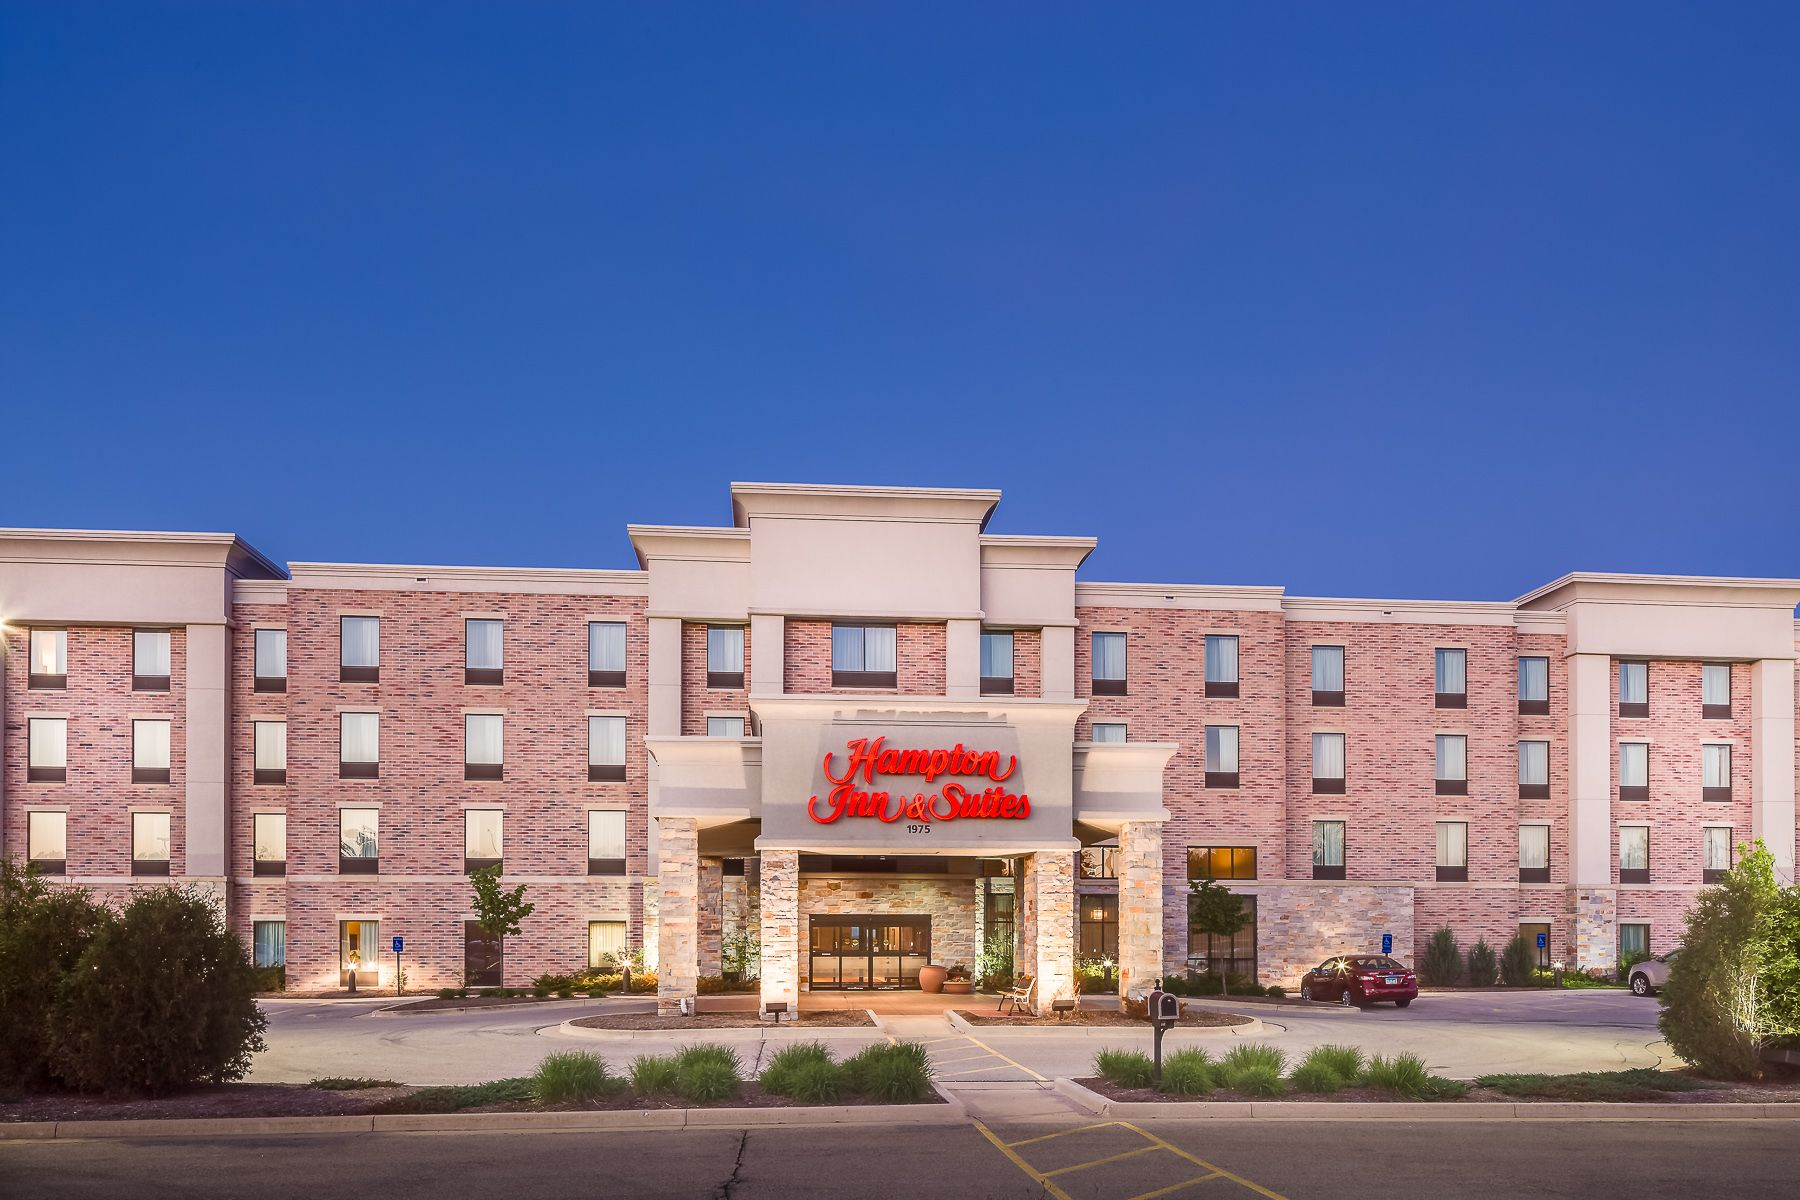 Hampton Inn And Suites West Bend Wisconsin Located Conveniently